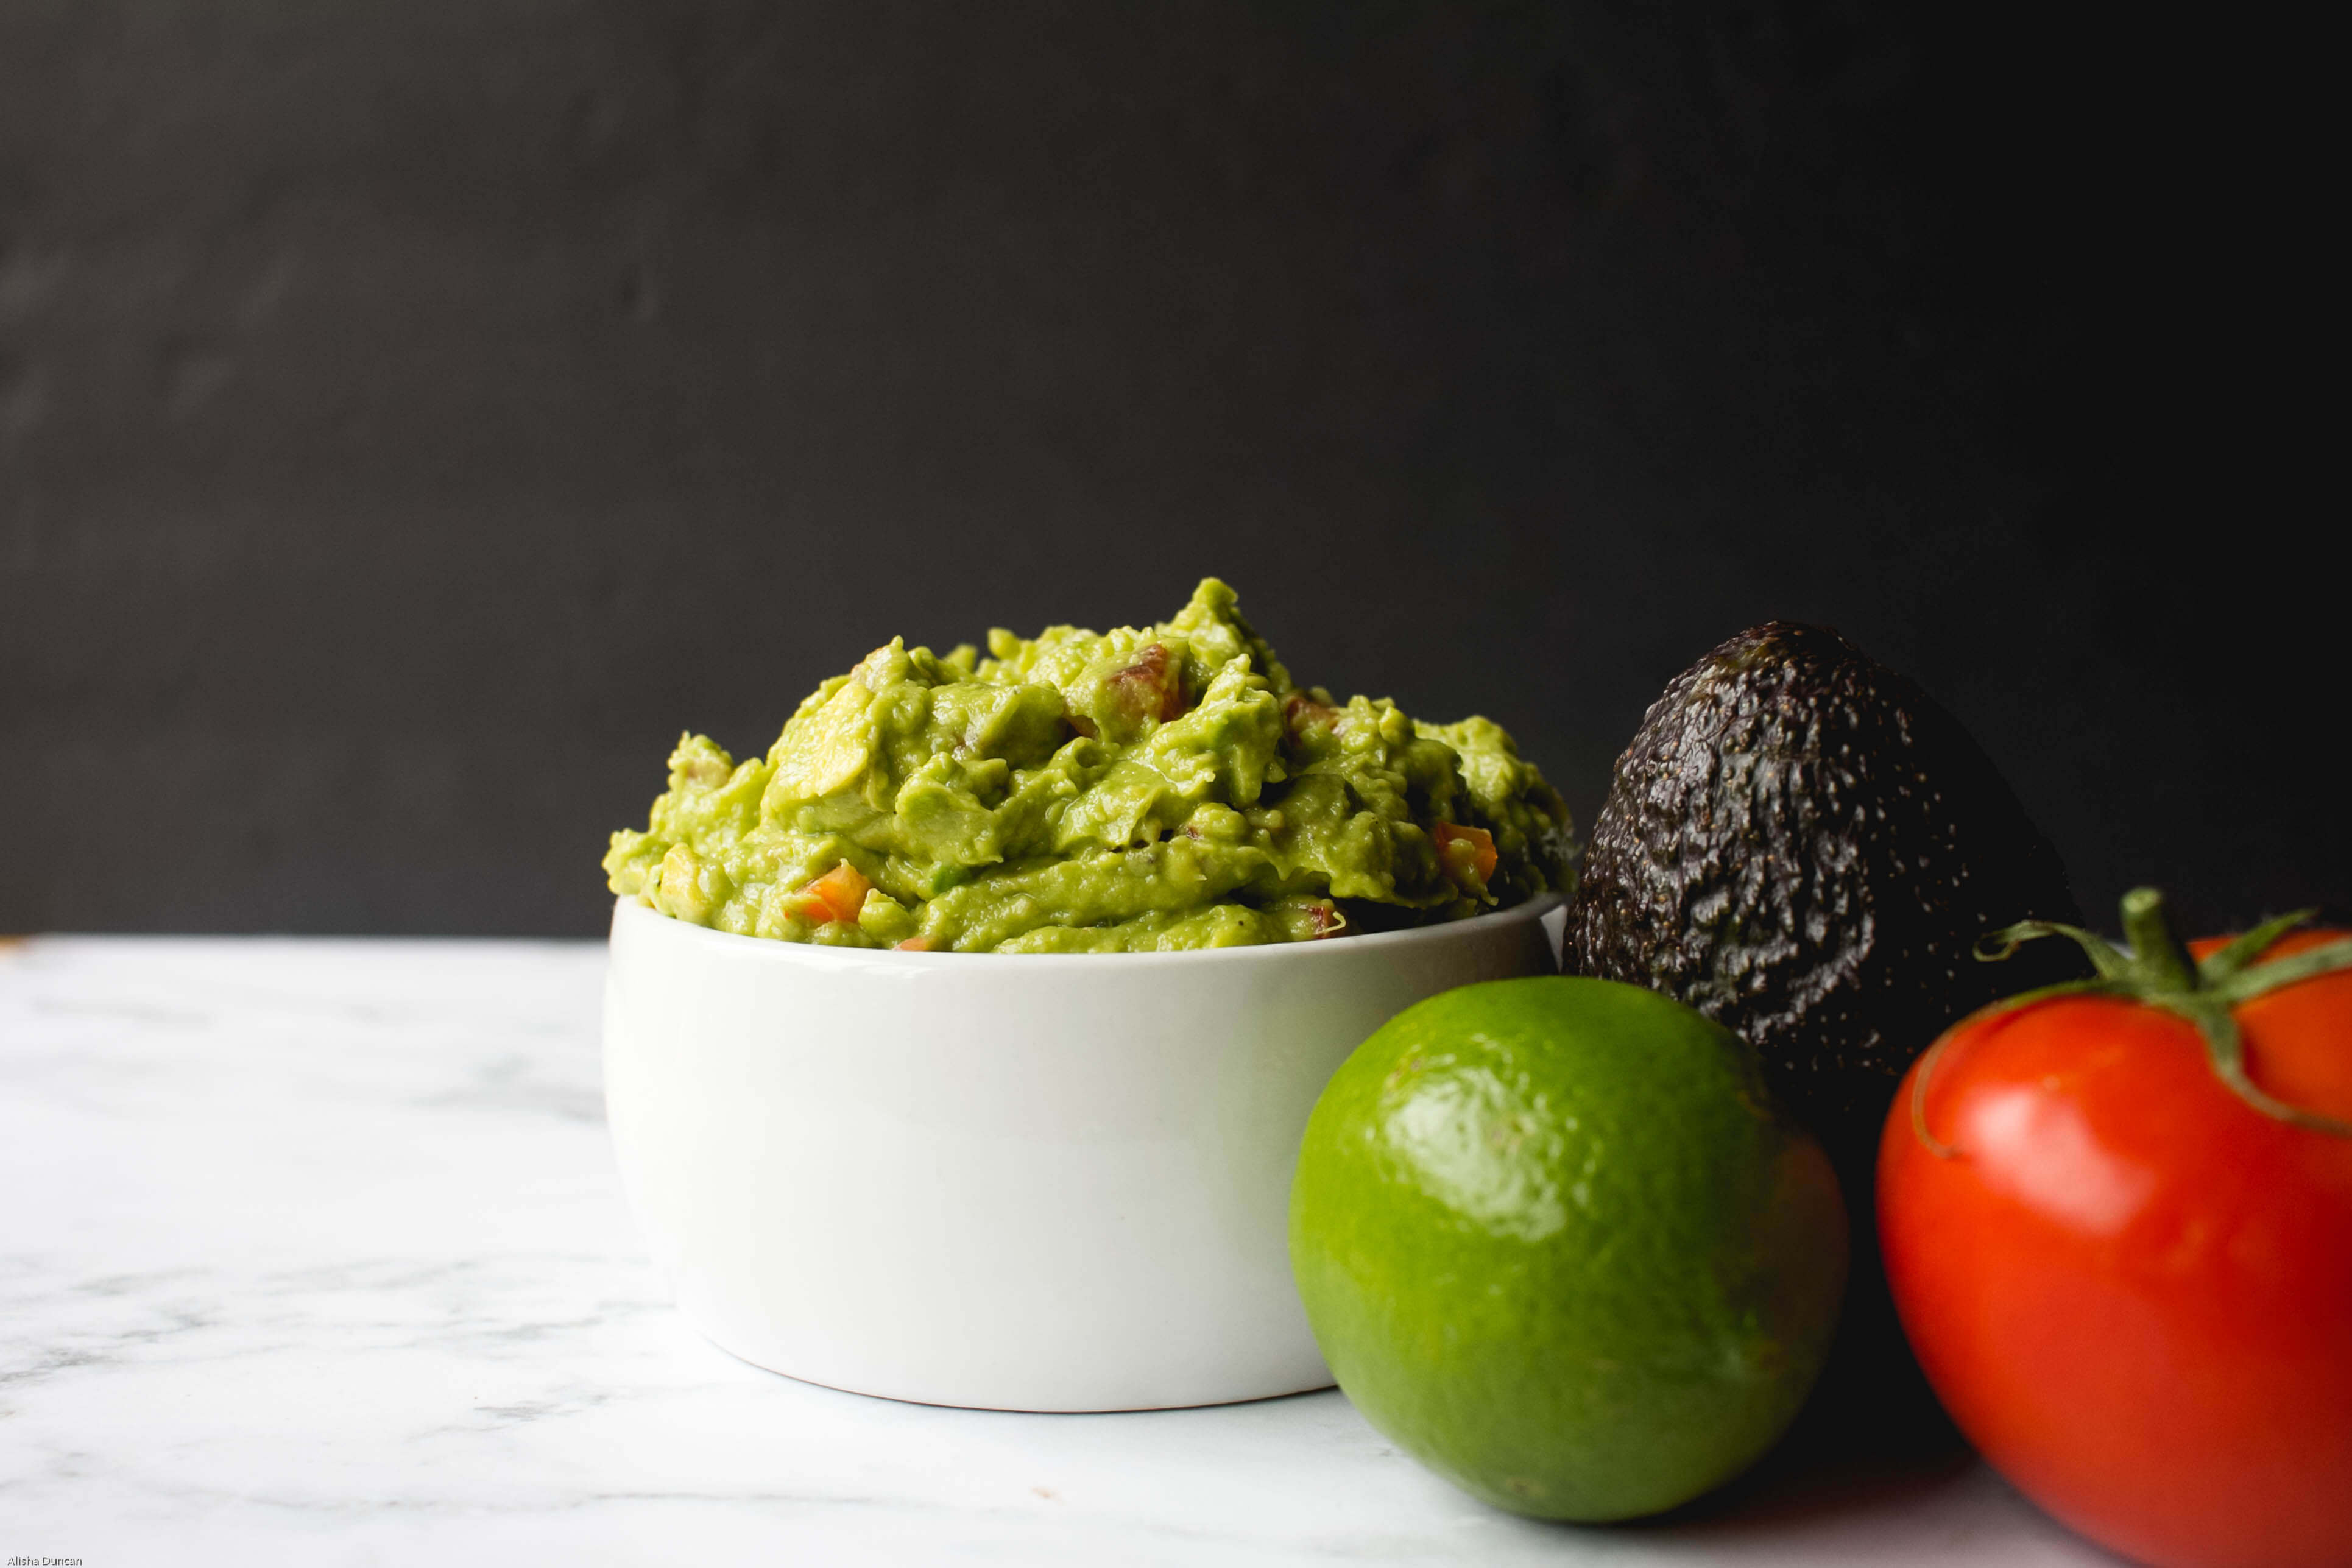 TOTS Family, Parenting, Kids, Food, Crafts, DIY and Travel IMG_6071 Quick and Easy Guacamole Recipe Appetizers Food Miscellaneous Recipes TOTS Family  recipe Guacamole